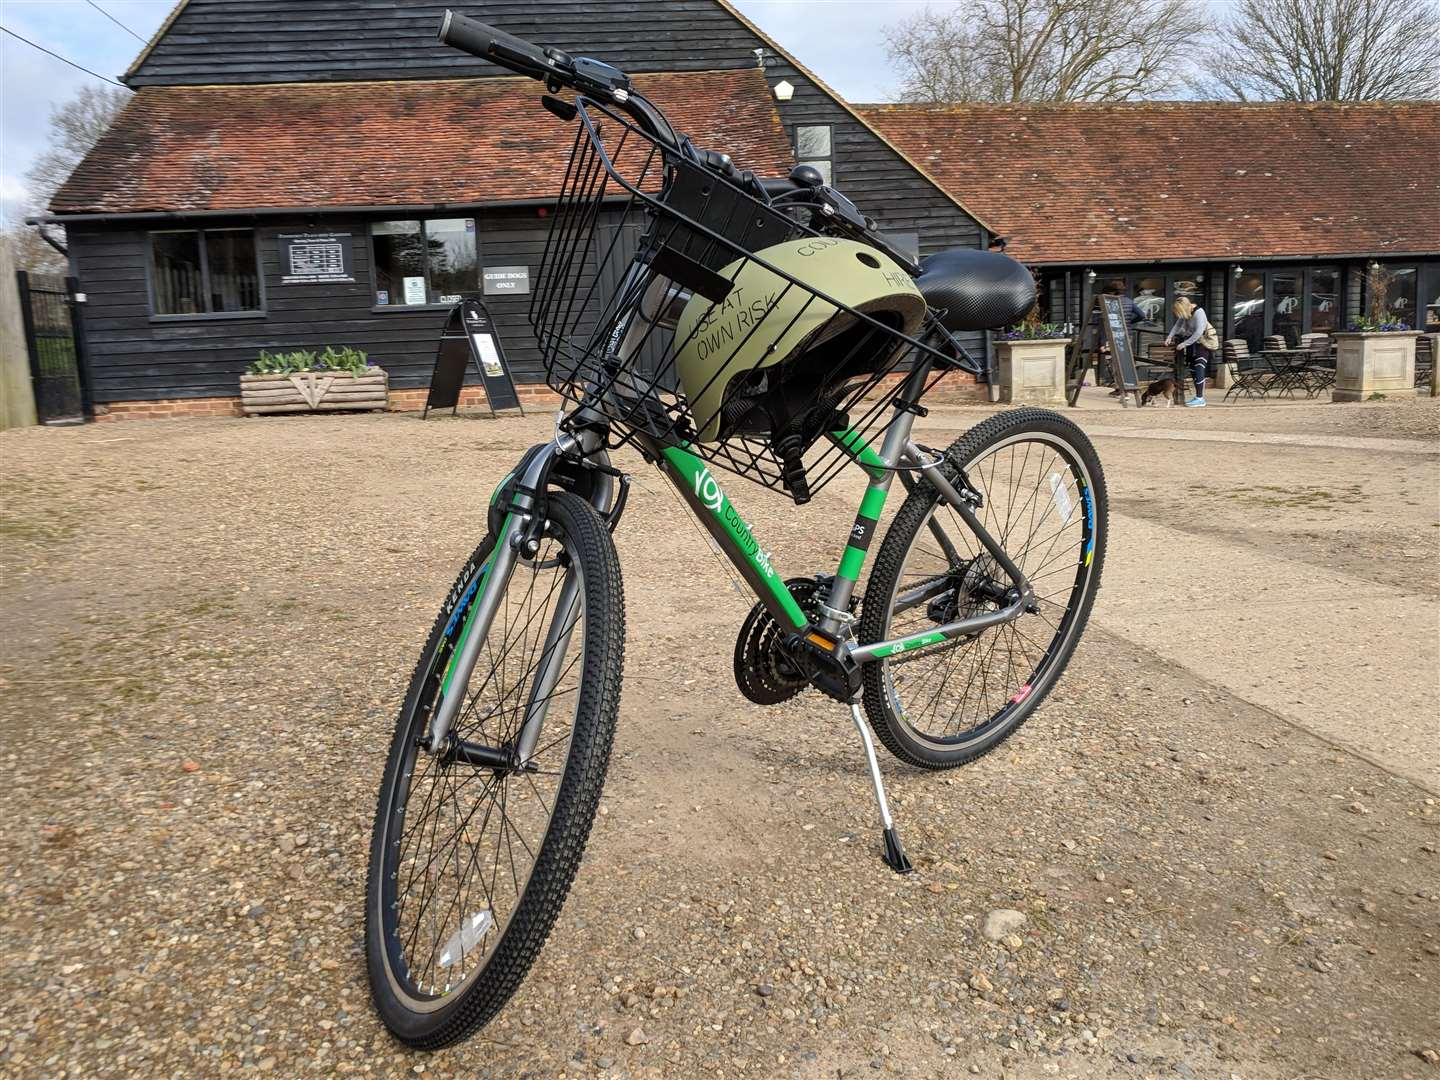 CountryBike has cycles to hire at Penshurst Place